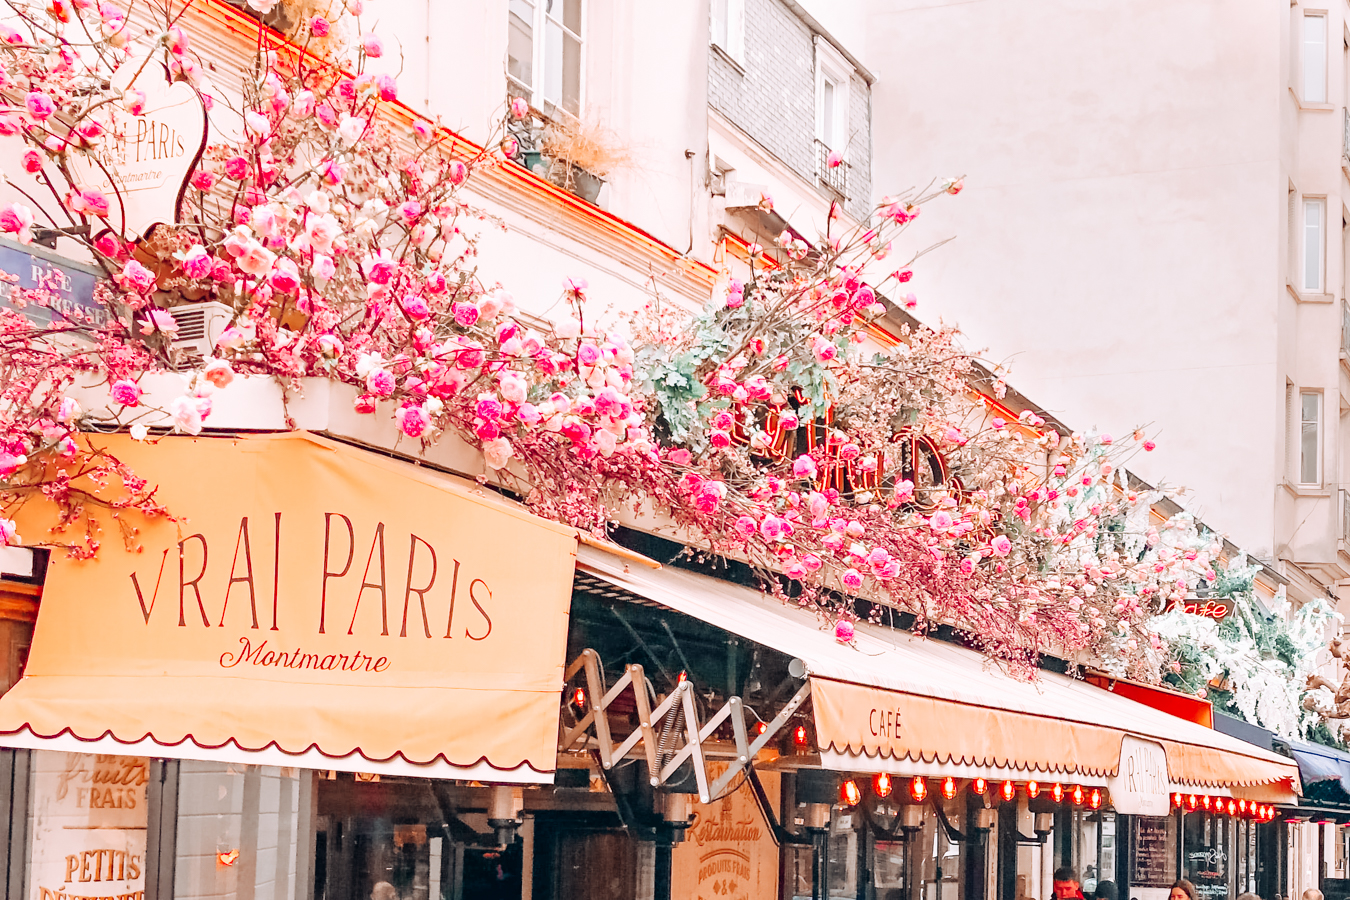 Cafe with cute pink flowers in Paris